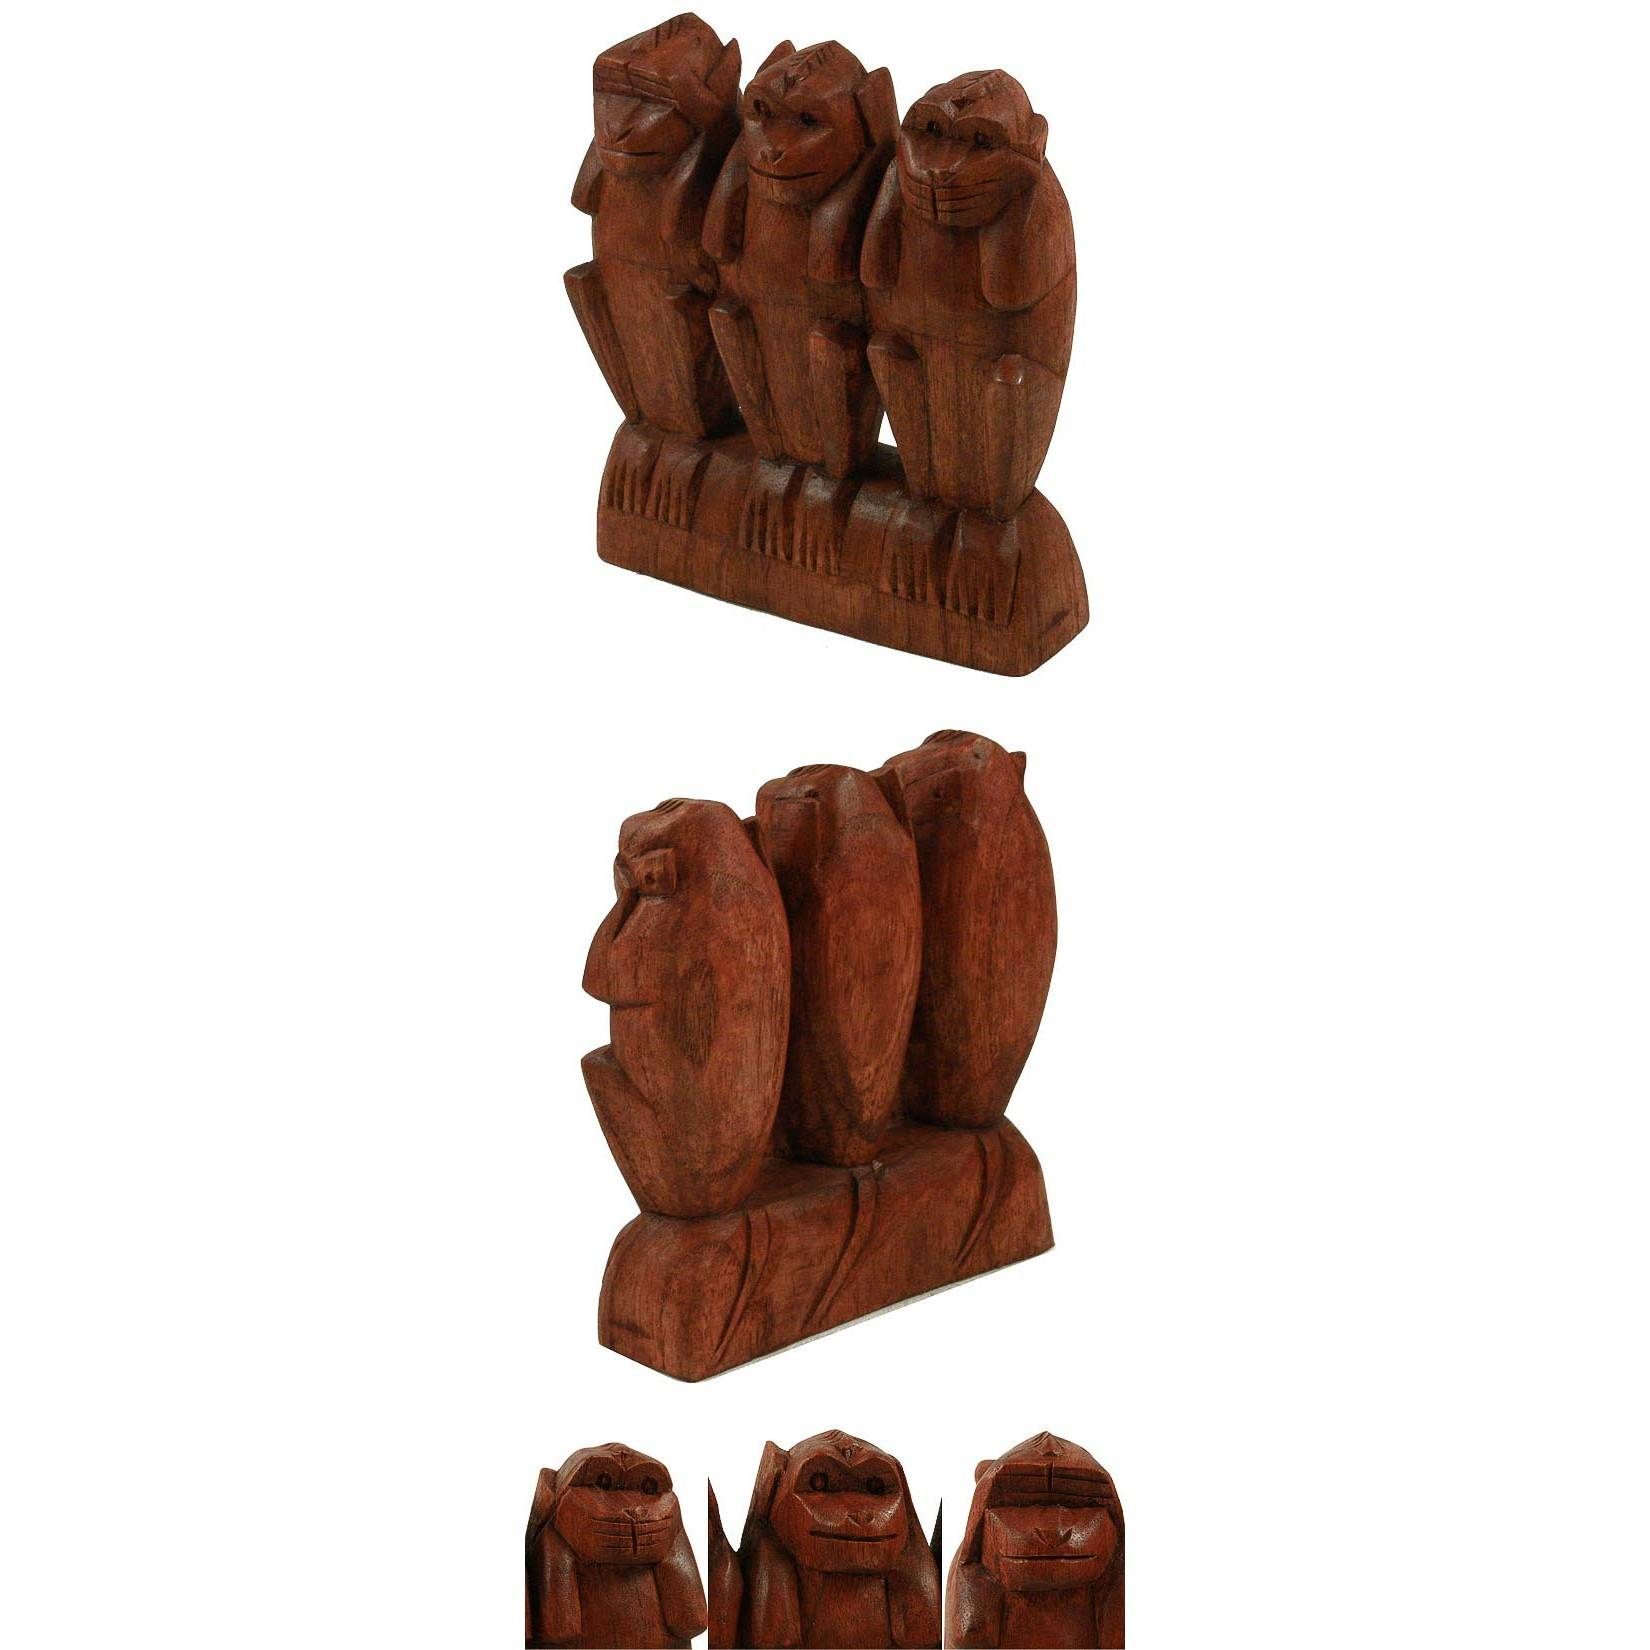 statuette les 3 singes de la sagesse acheter decoration maison statue singe statue. Black Bedroom Furniture Sets. Home Design Ideas